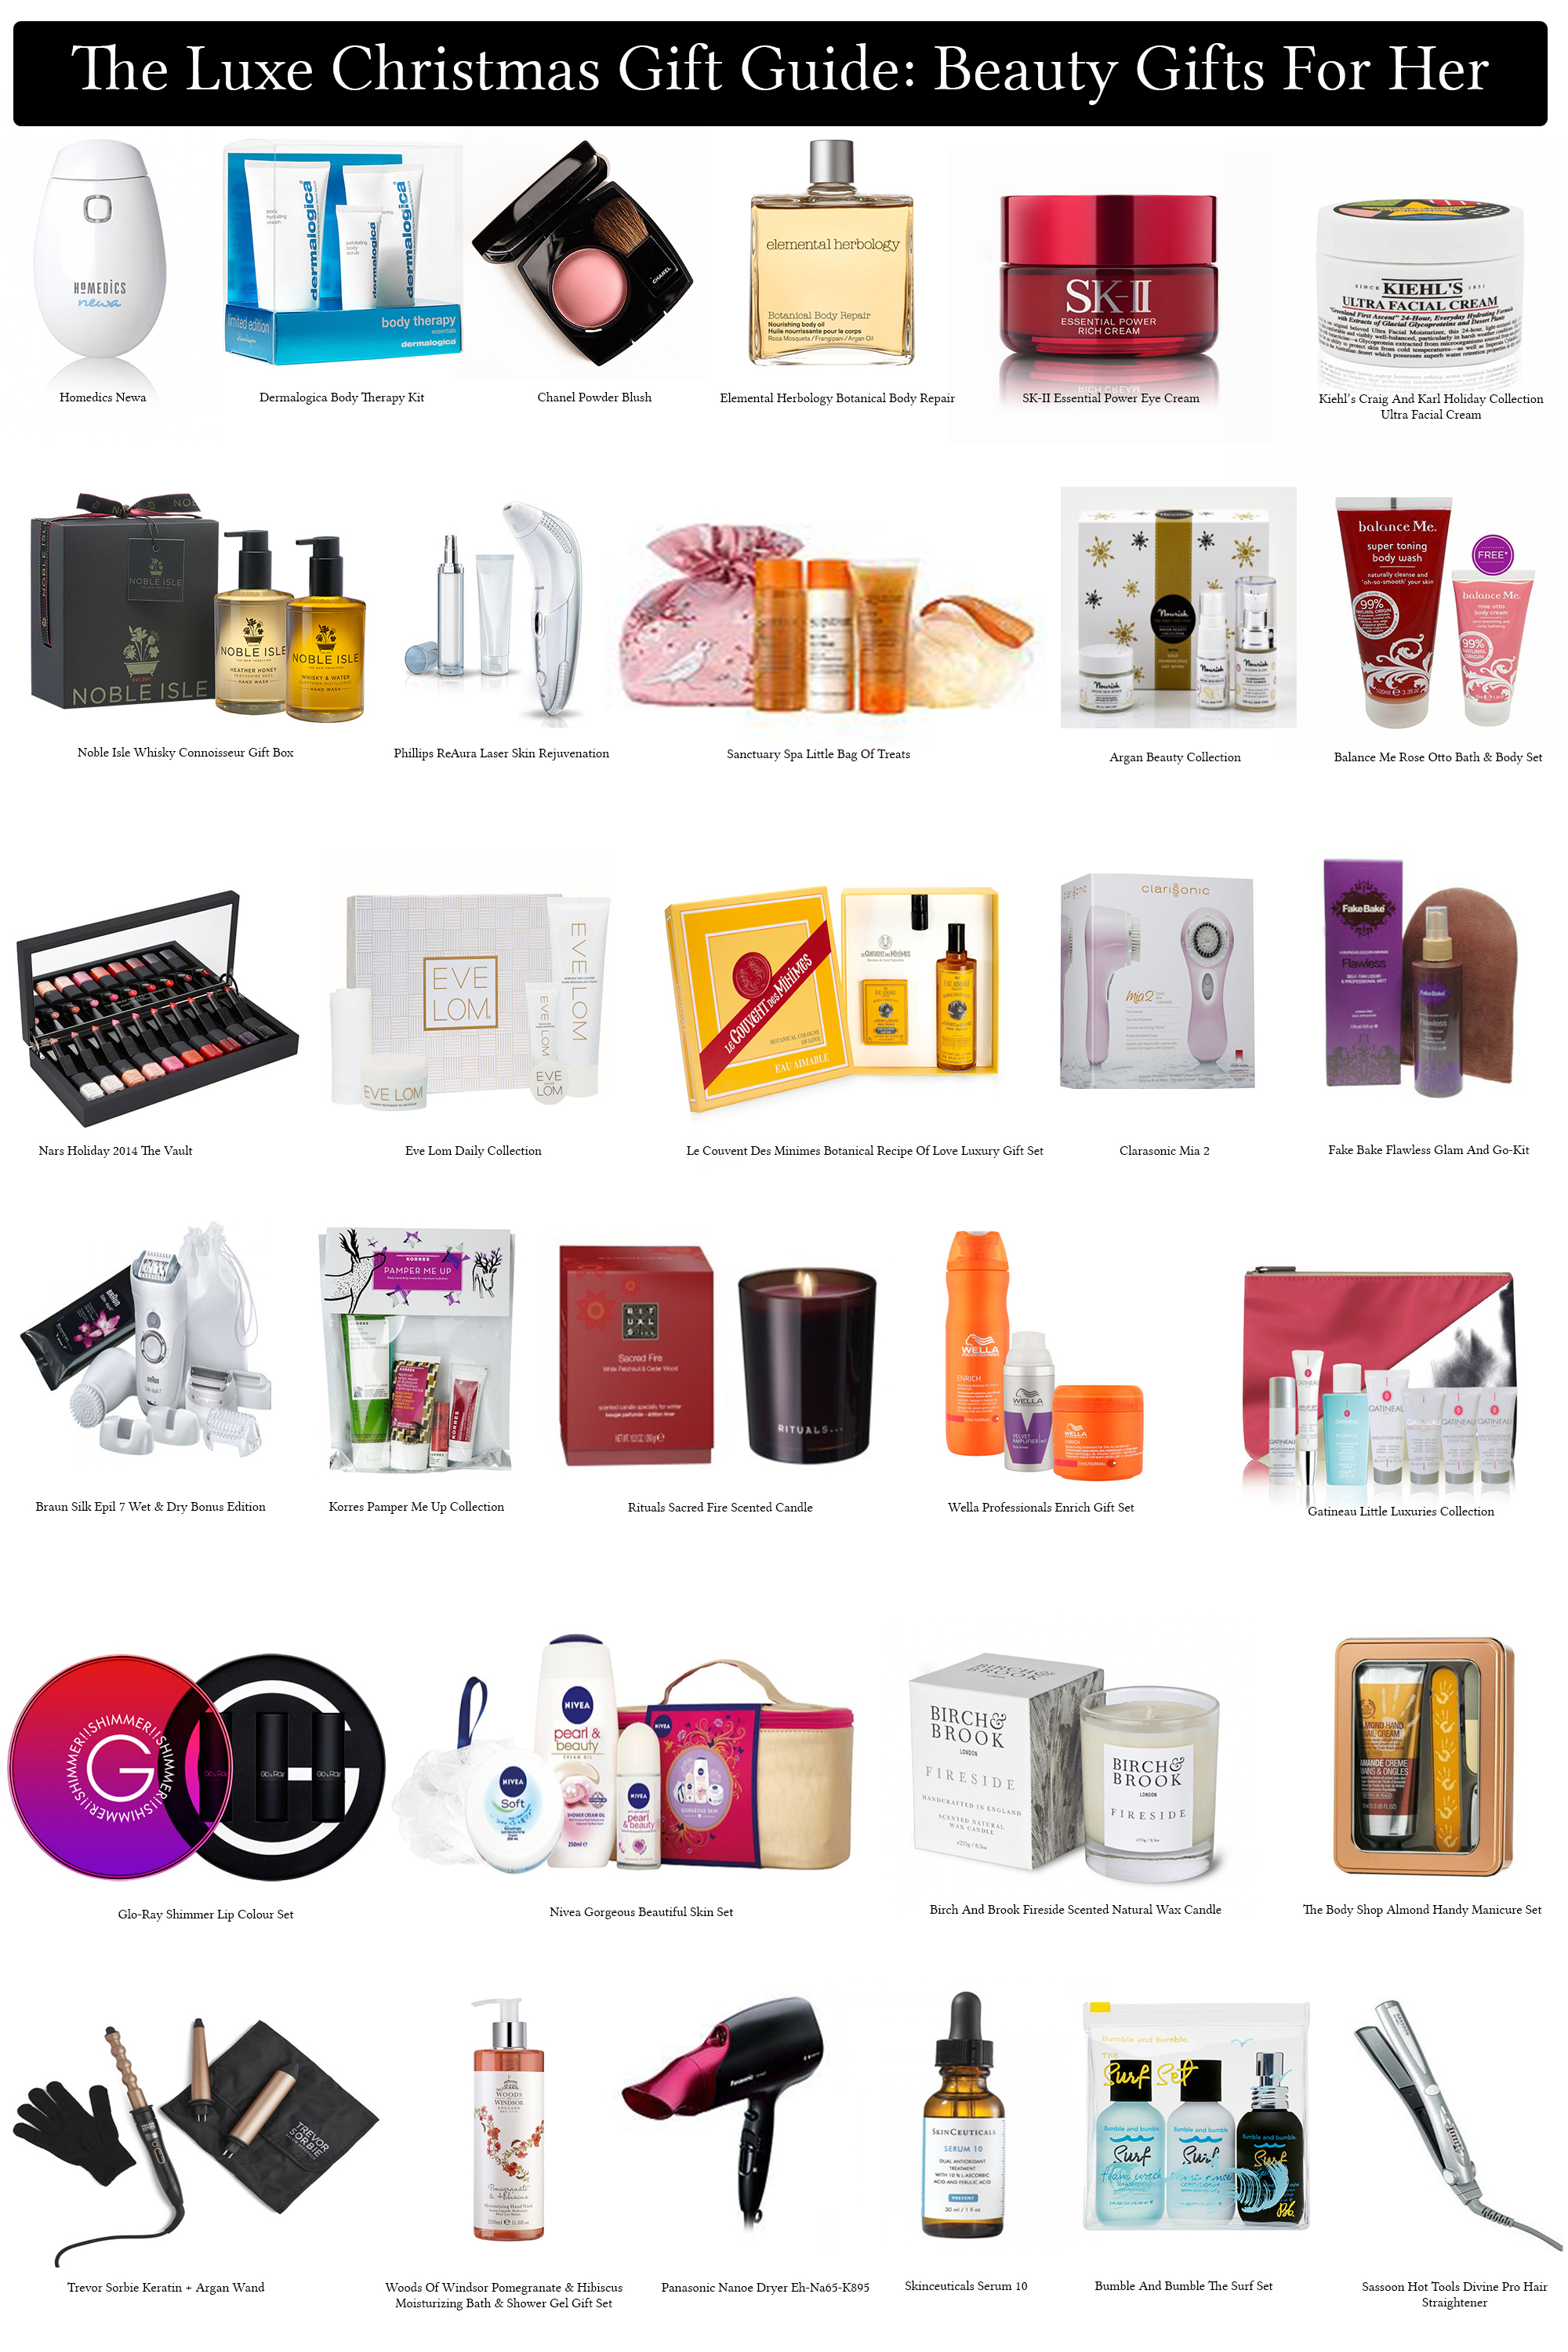 The Luxe Christmas Gift Guide Beauty Gifts For Her  sc 1 st  The Luxe Beauty Blog - WordPress.com & The Luxe Christmas Gift Guide: Beauty Gifts For Her | The Luxe ...